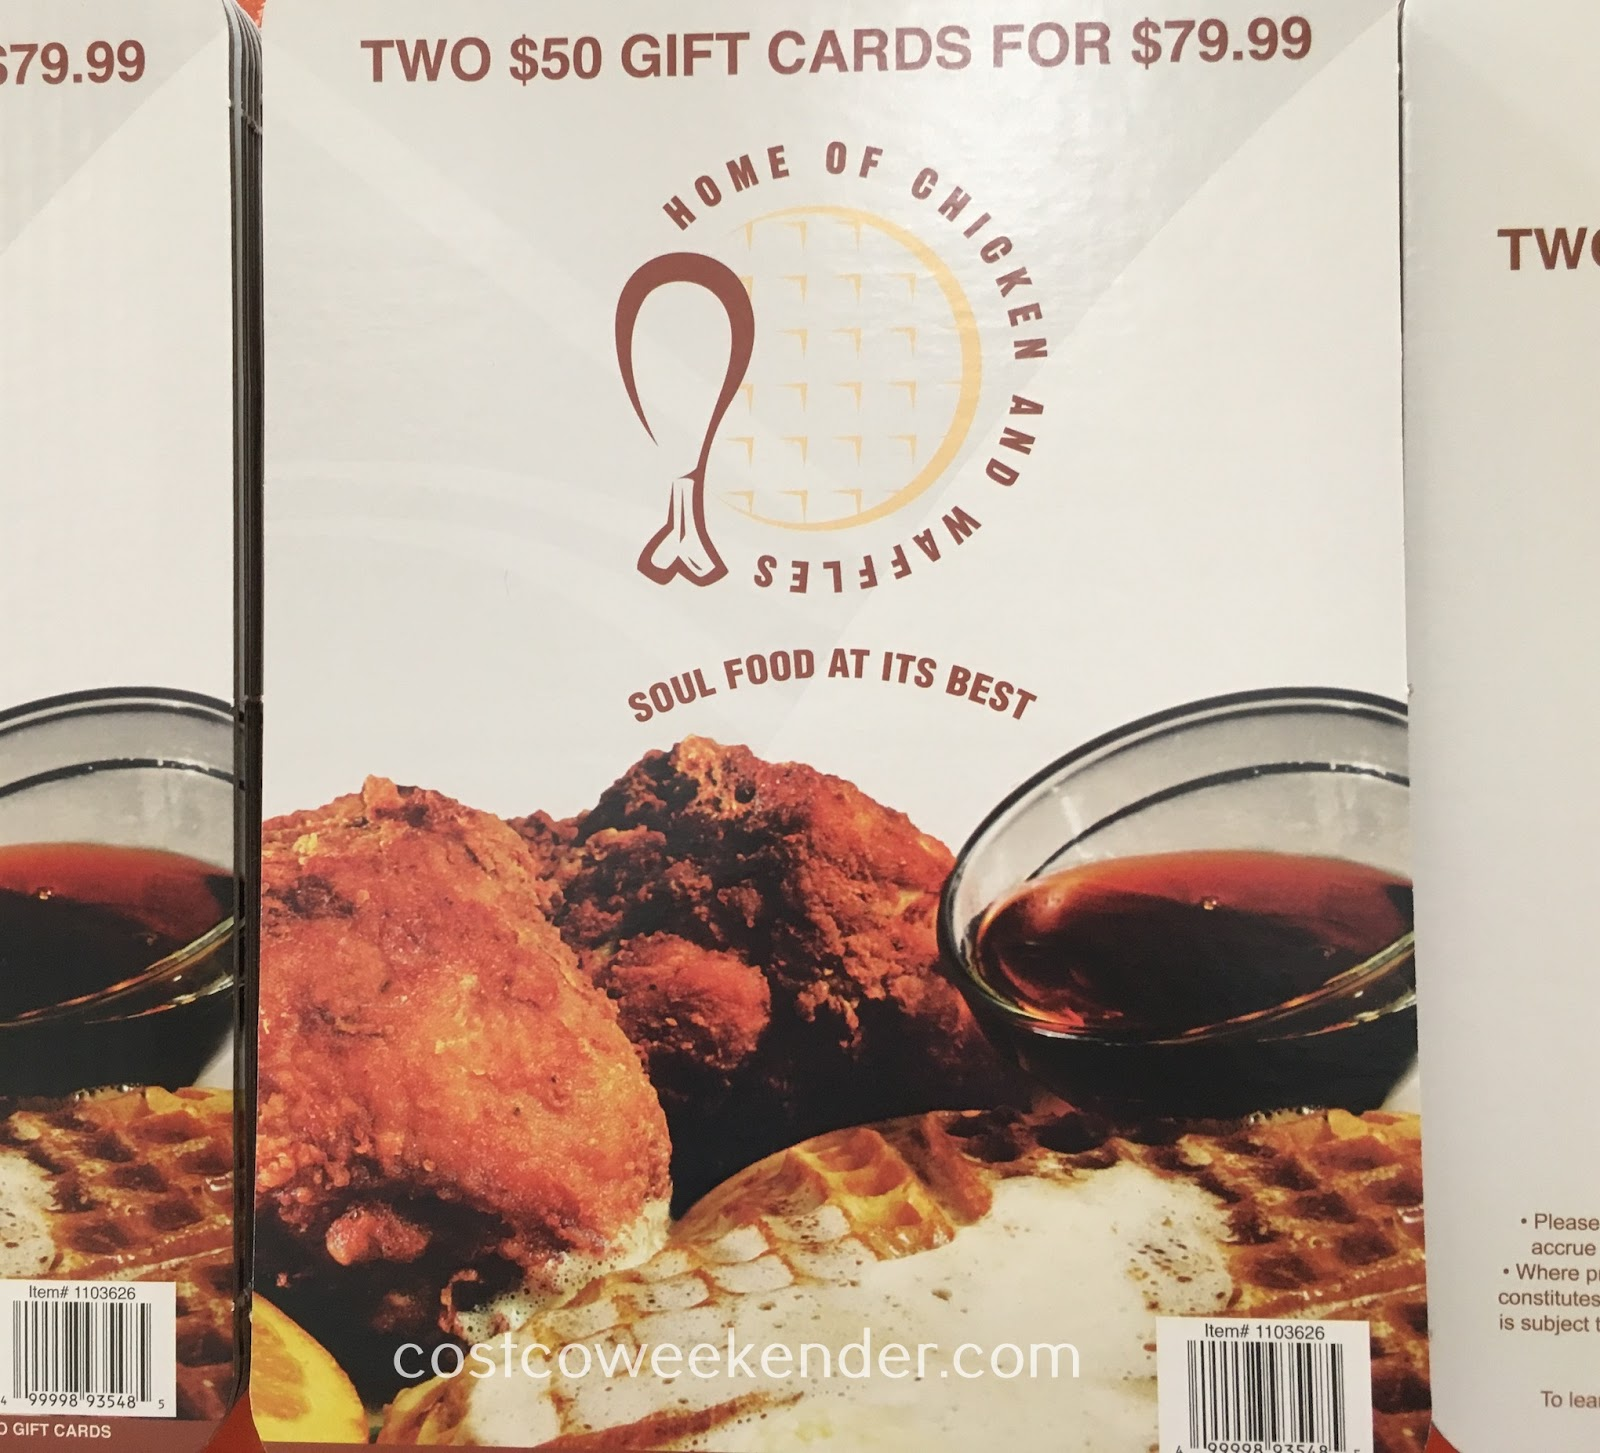 Enjoy fried chicken and sweet waffles with Home of Chicken and Waffles gift cards